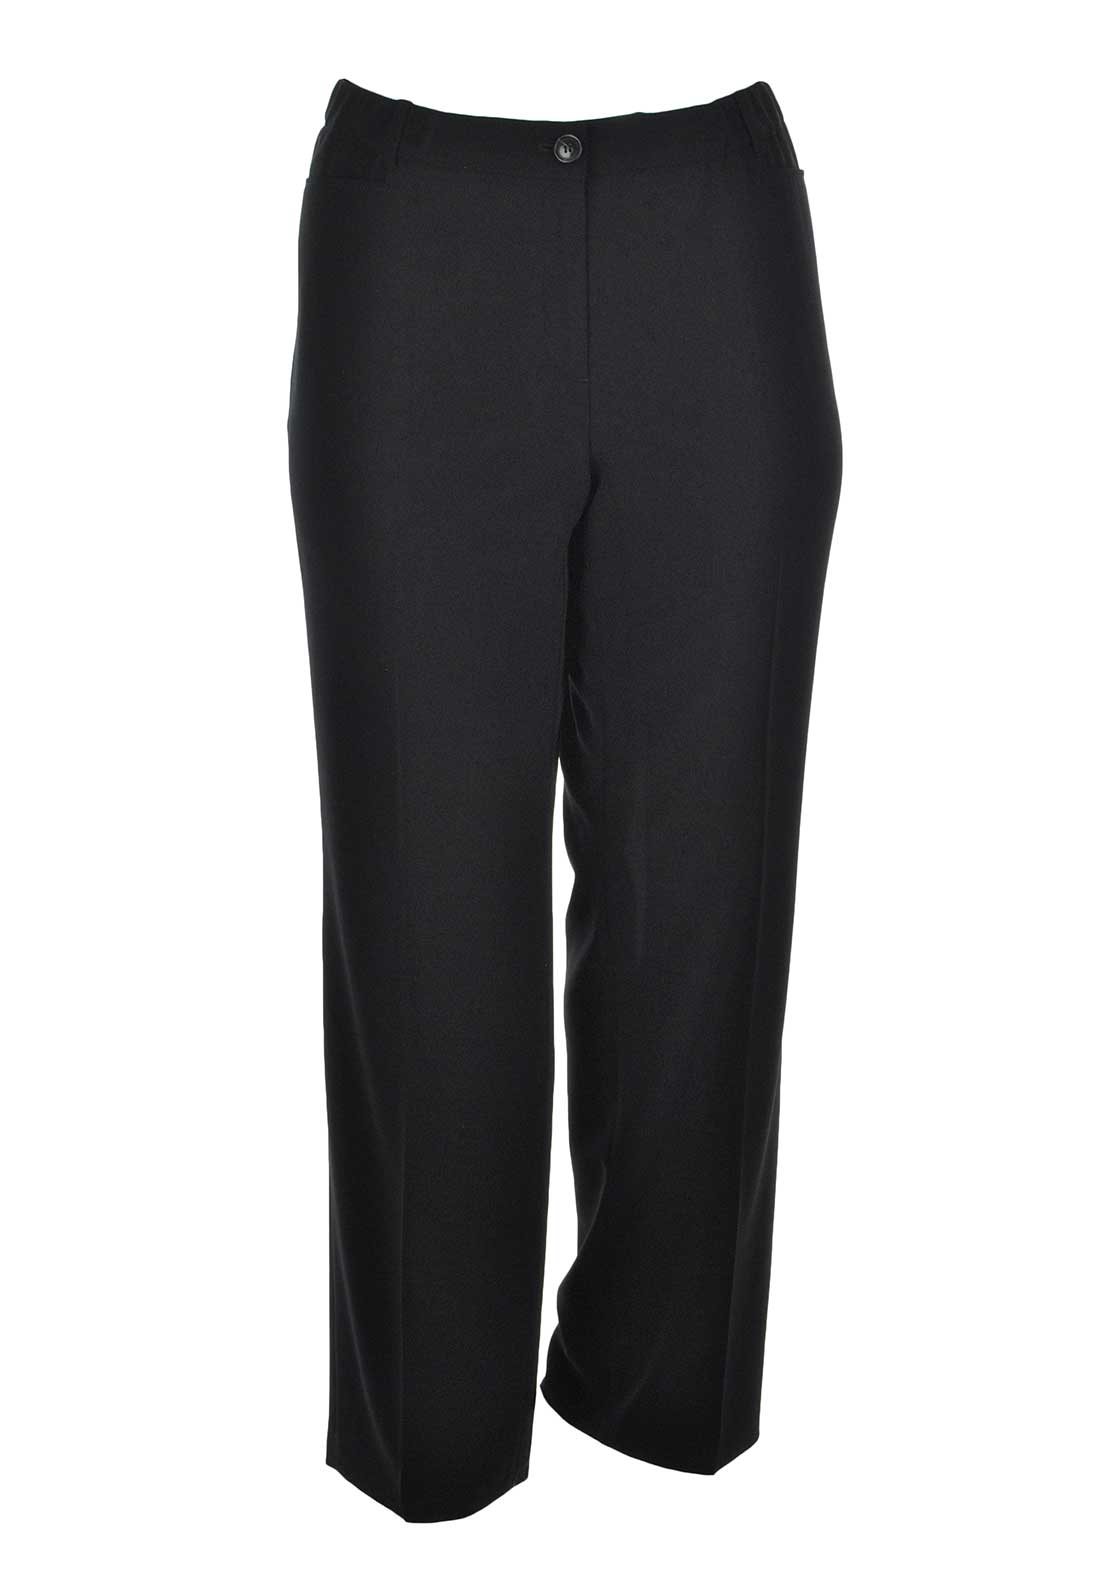 Samoon Straight Leg Trousers, Black